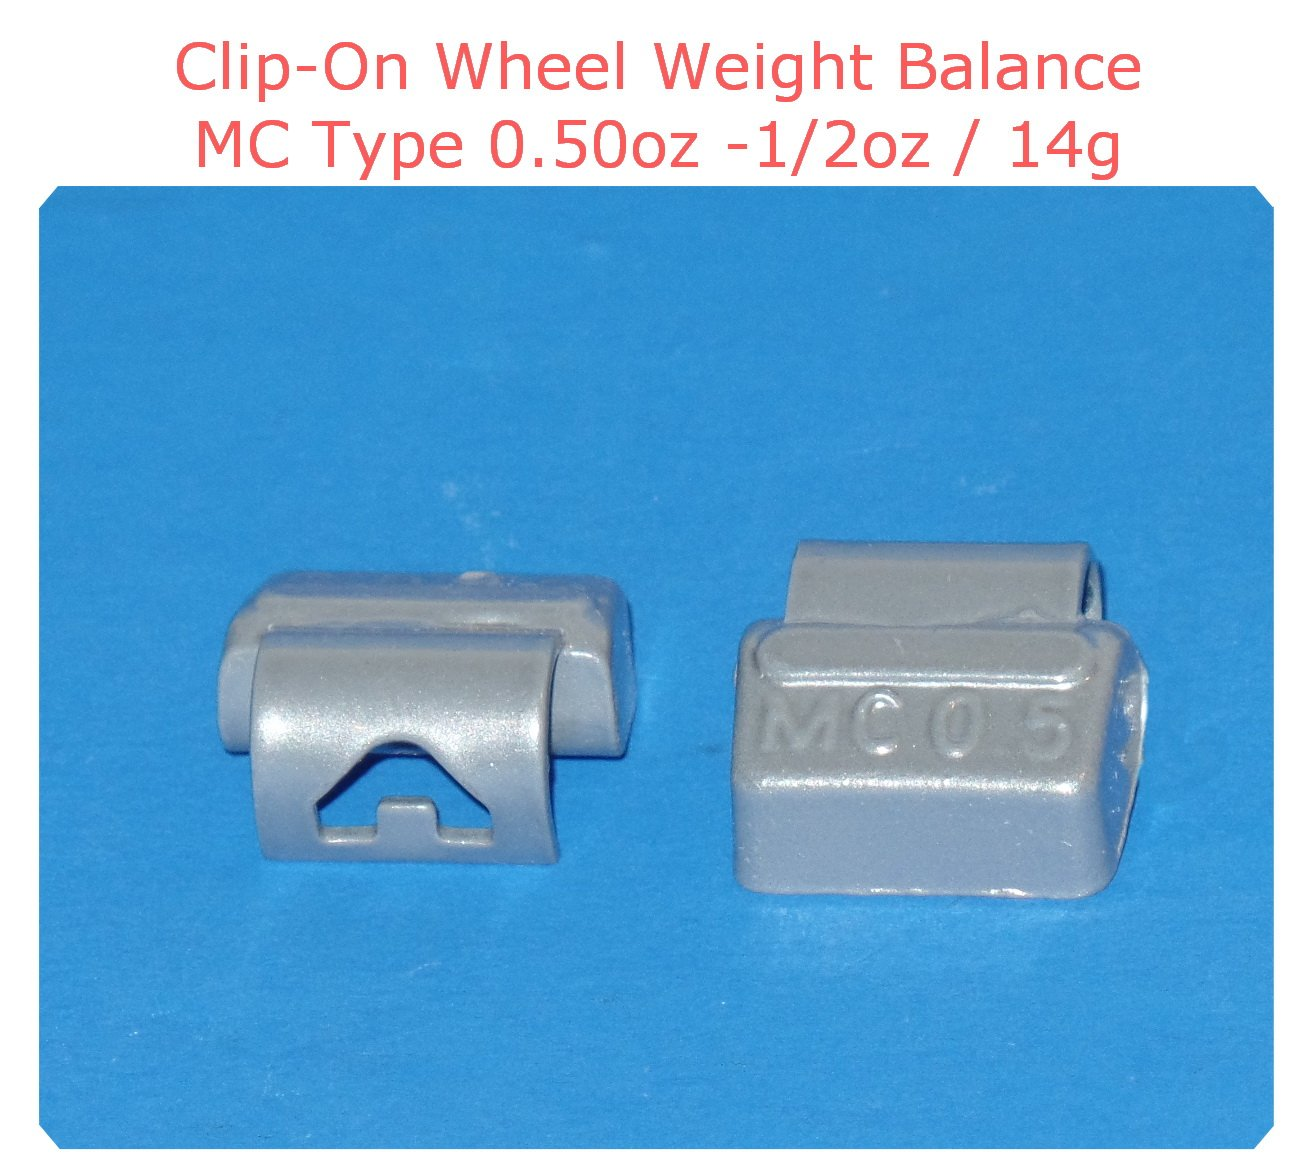 (25 Pieces) ZN CLIP-ON WHEEL WEIGHT BALANCE 0.50 1/2oz MC Type Total 12.50oz (Use for All Types of Alloy wheels On Passenger Cars , Trucks , Vans & Motorcycles) by VPro (Image #2)